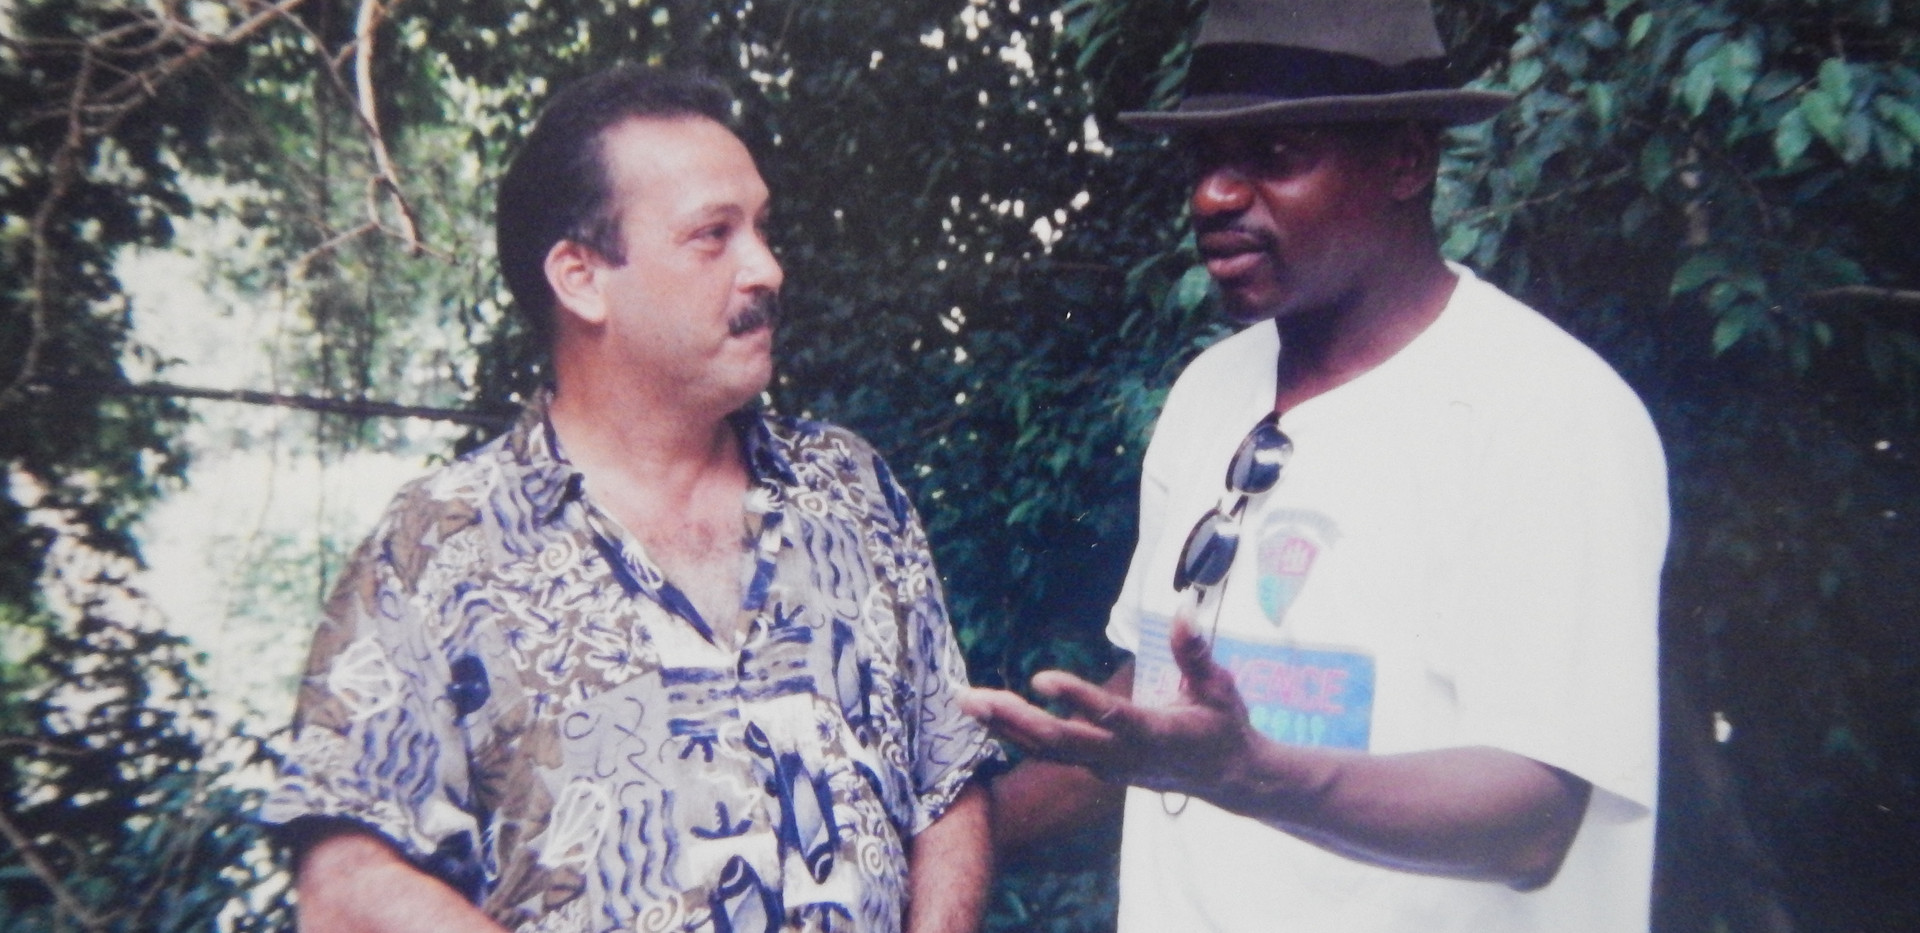 In Cuba interviewing Dr Olavo Director of Cuban historical society 1996